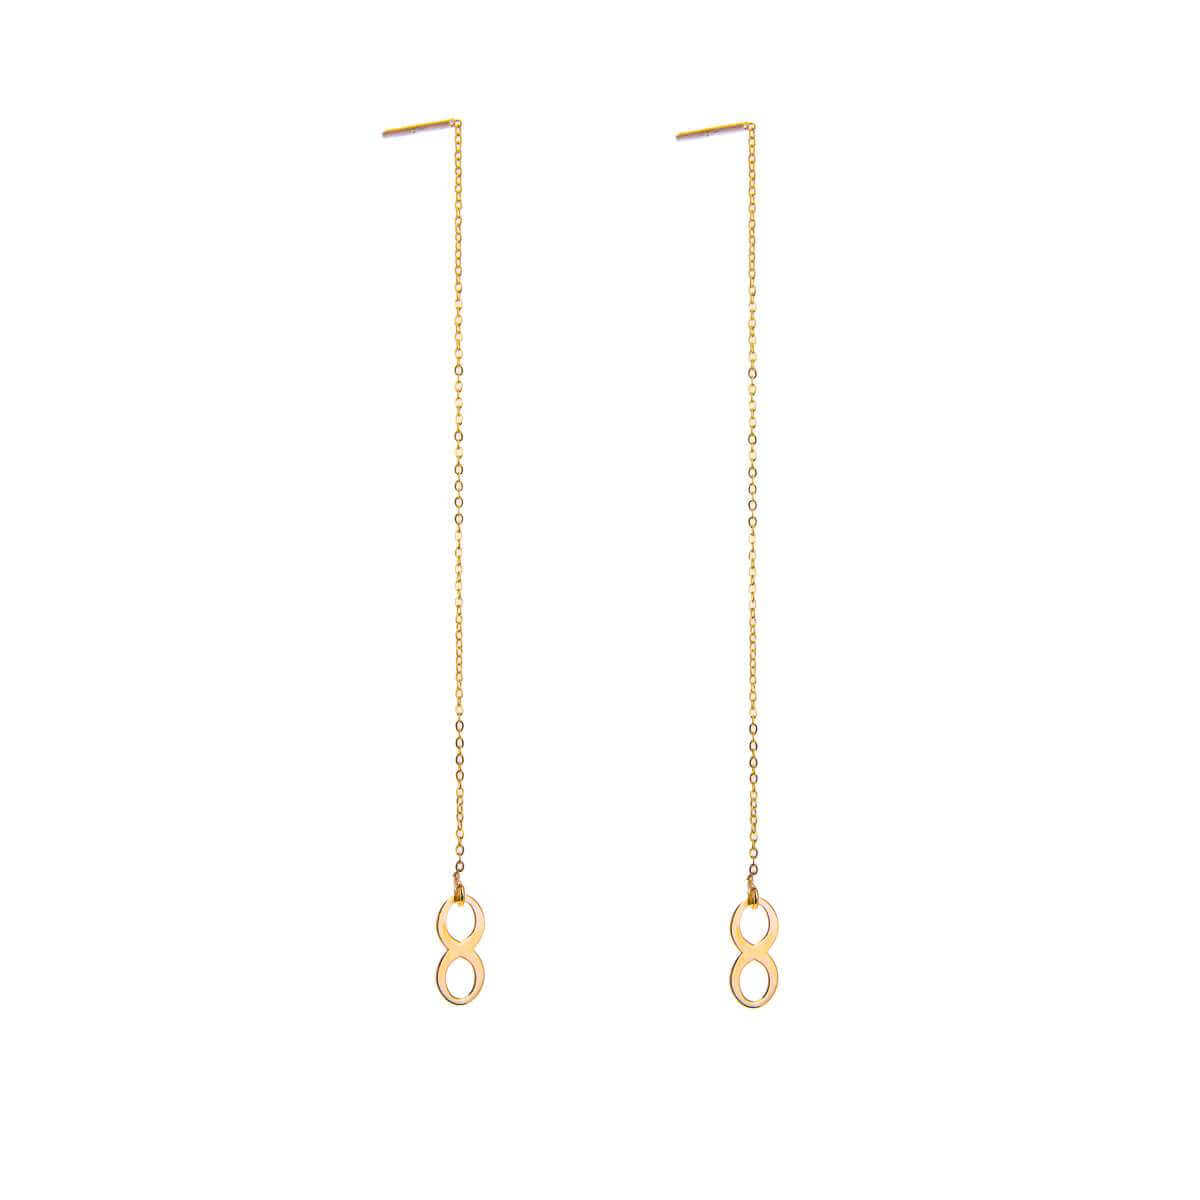 9ct Gold Infinity Pull Through Earrings